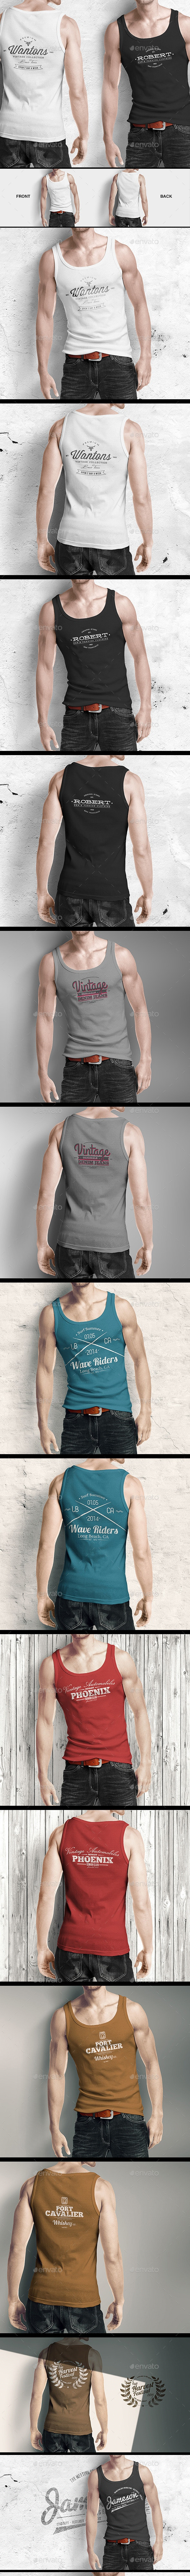 Man Tank Shirt Mock-up - T-shirts Apparel